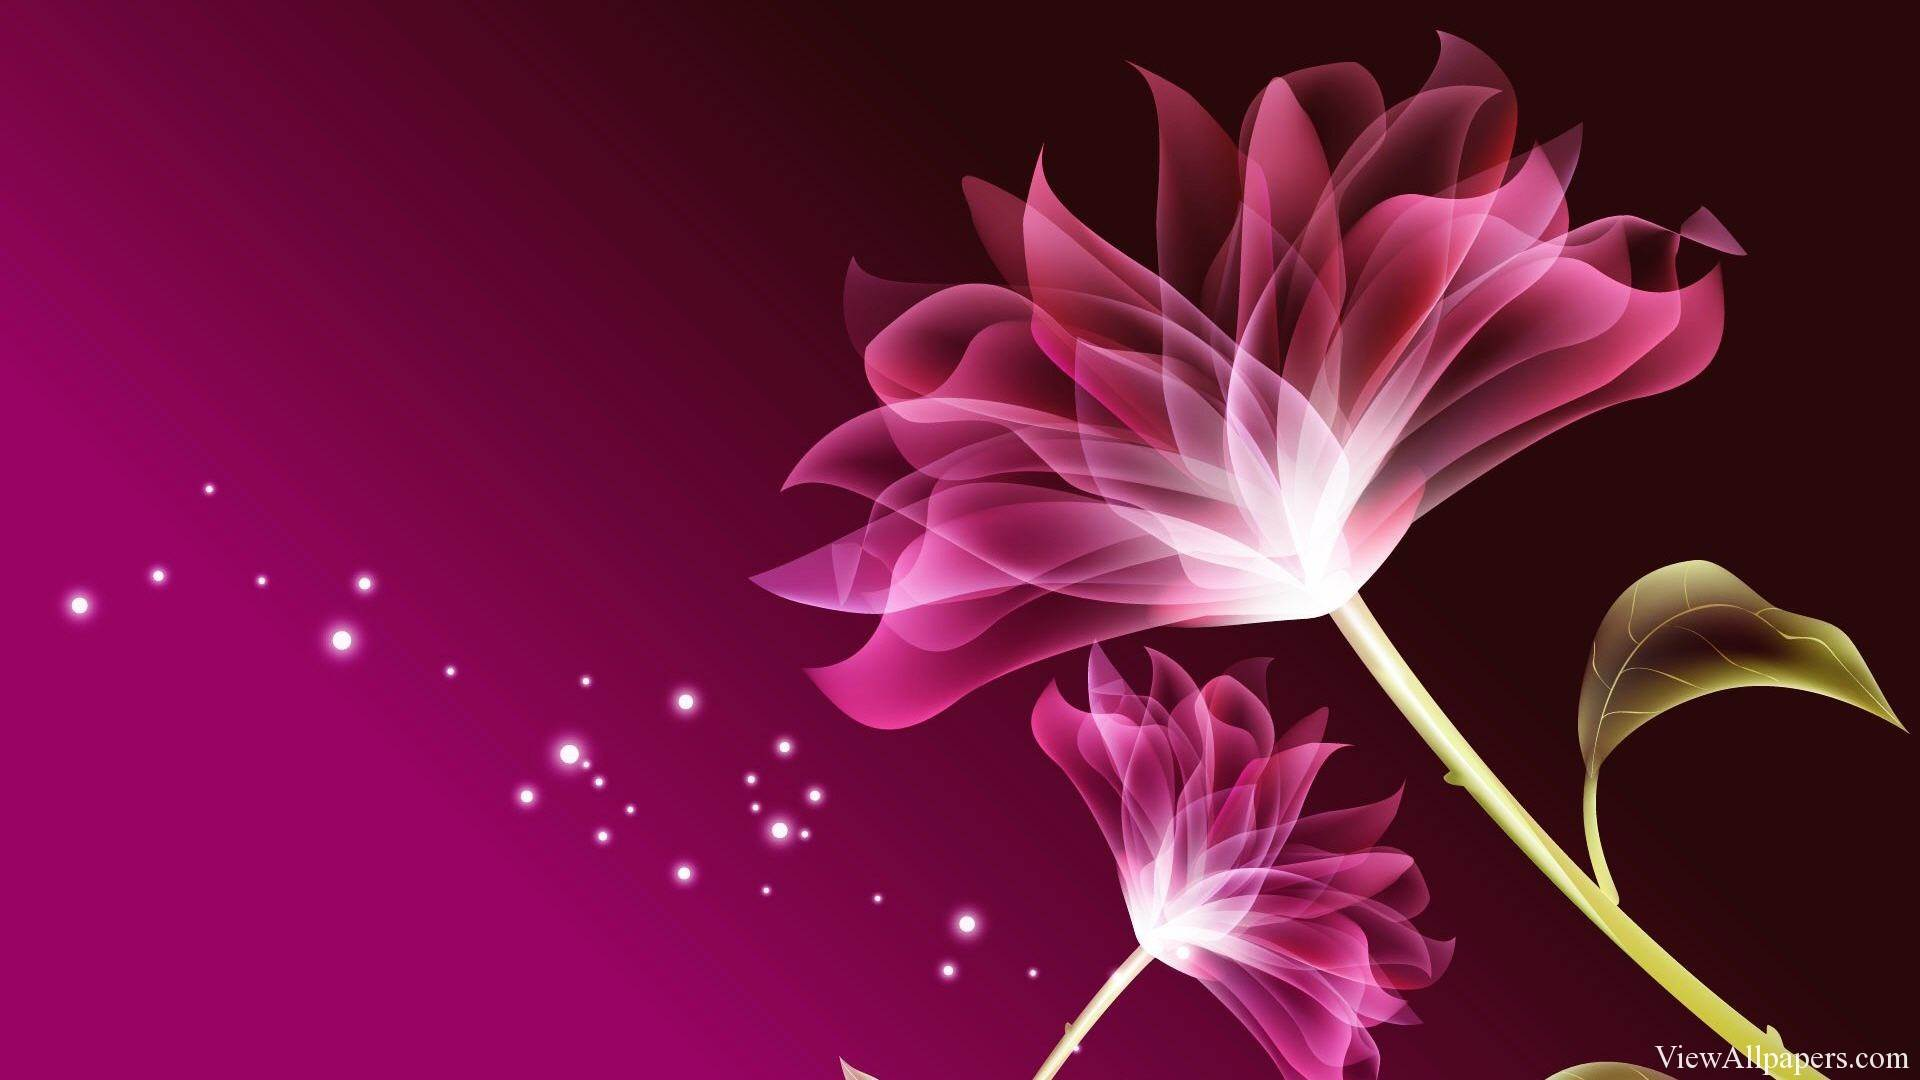 unknown beautiful flowers - flower wallpapers free download 1920x1080